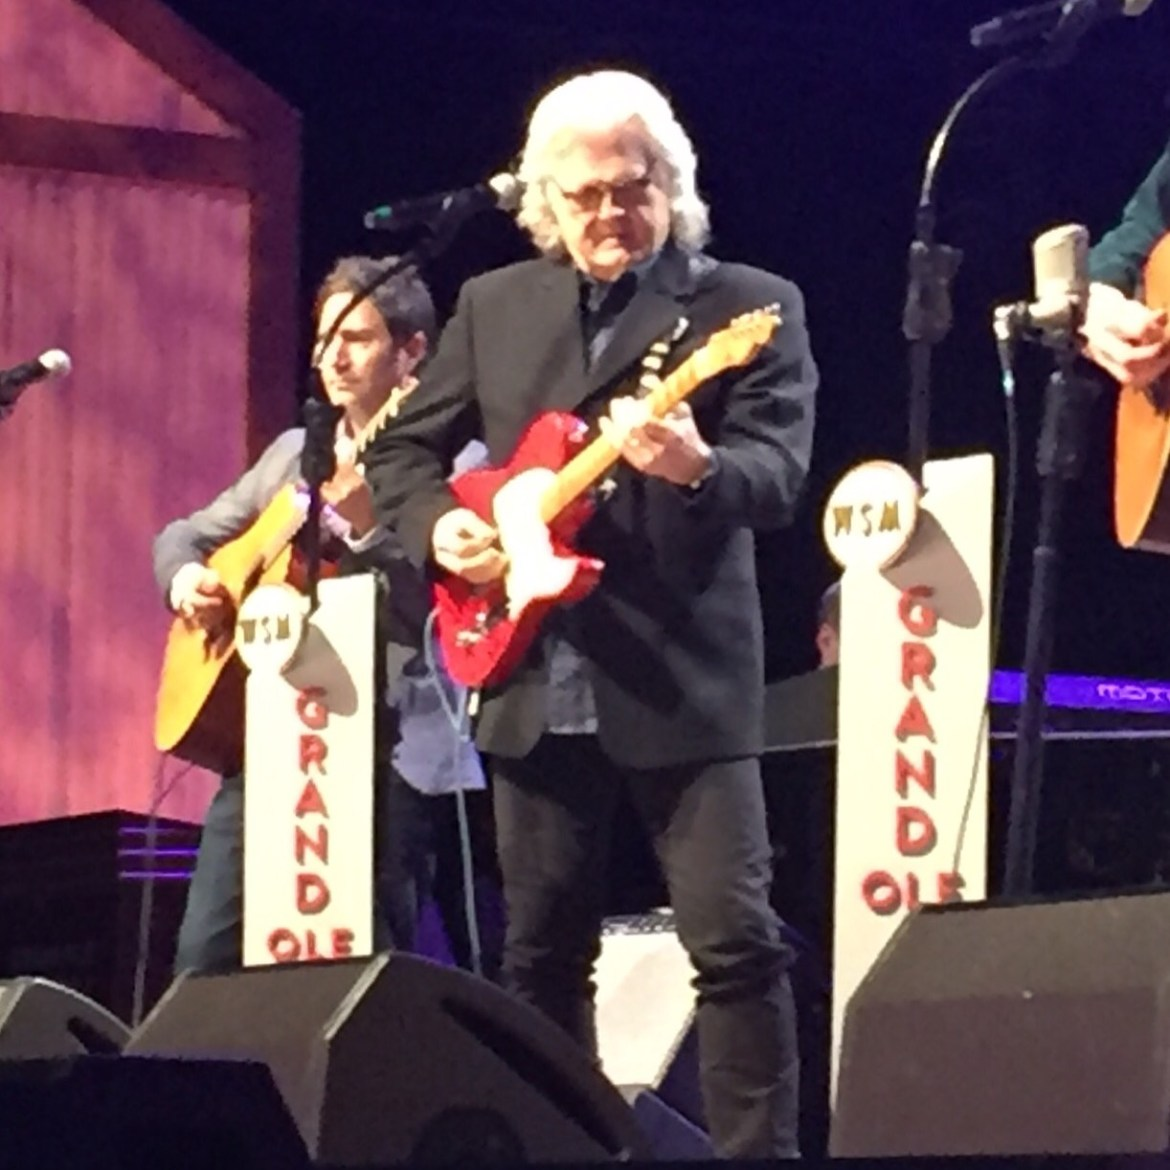 Ricky Skaggs, one of the many performers at The Grand Ole Opry